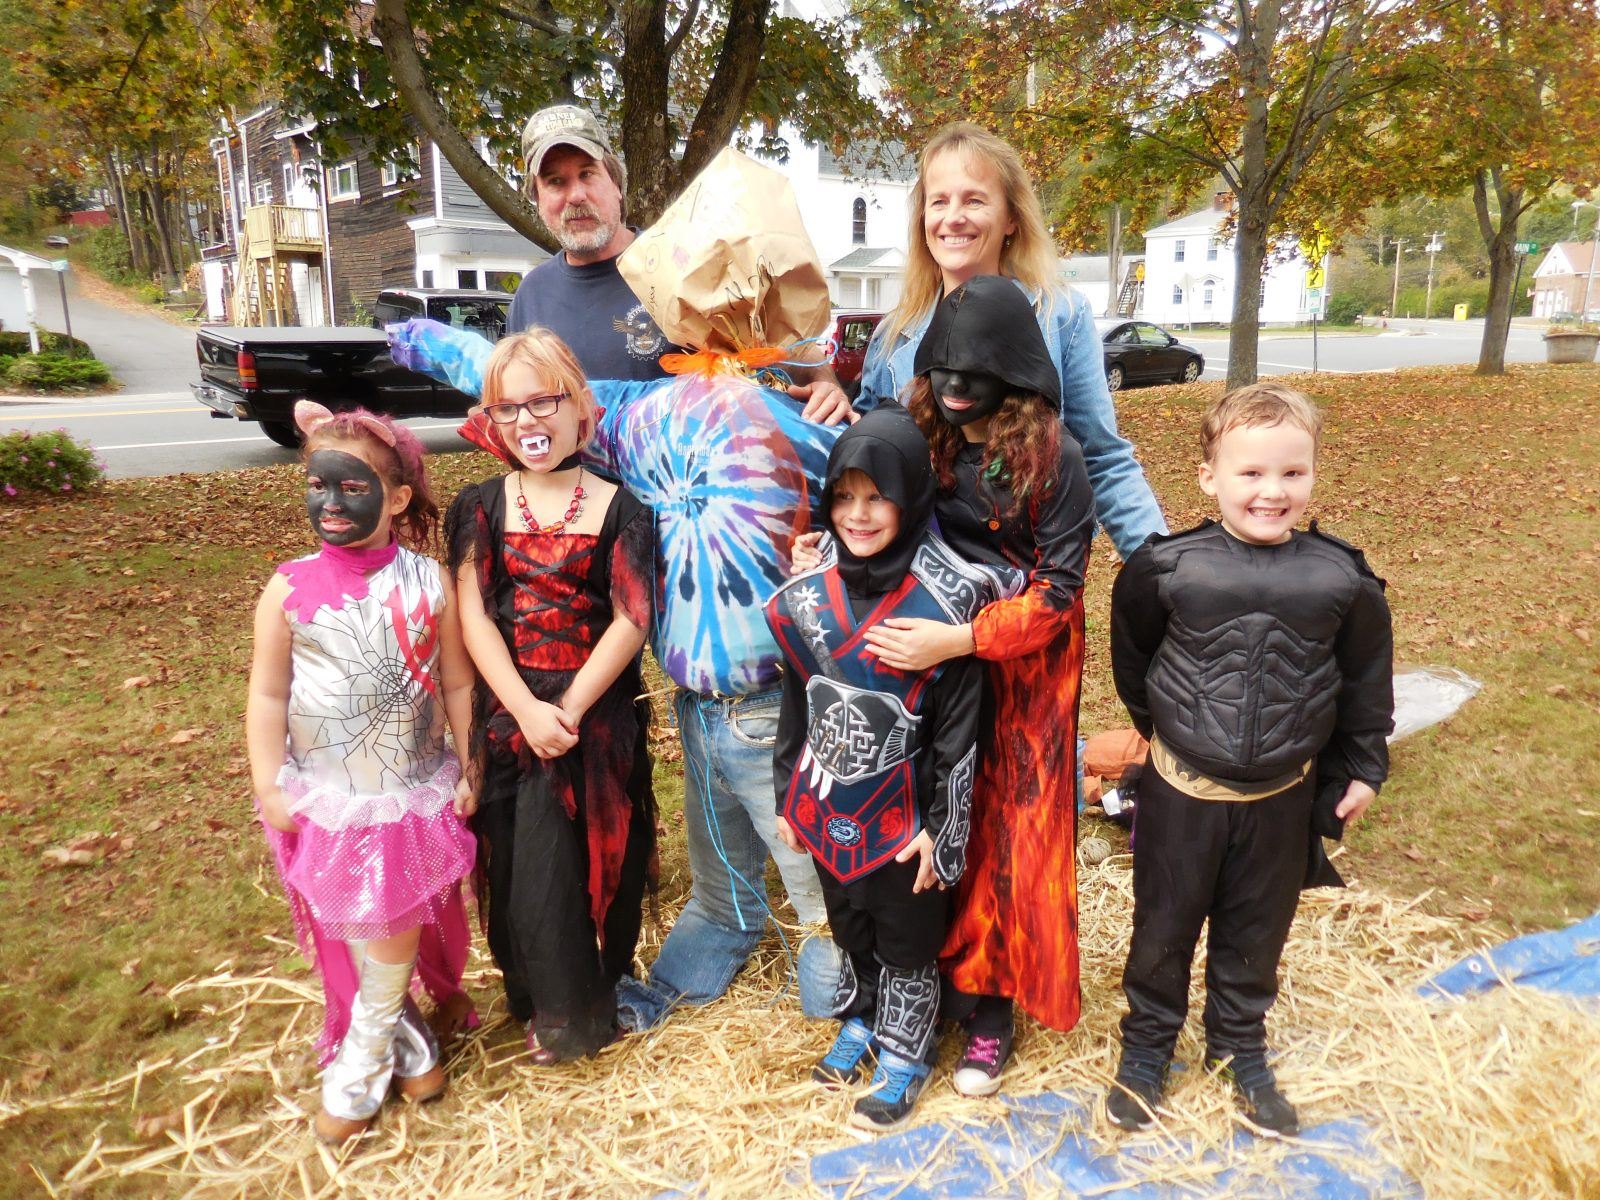 Huntington Recreation Committee hosts scarecrow making at Rag Shag parade